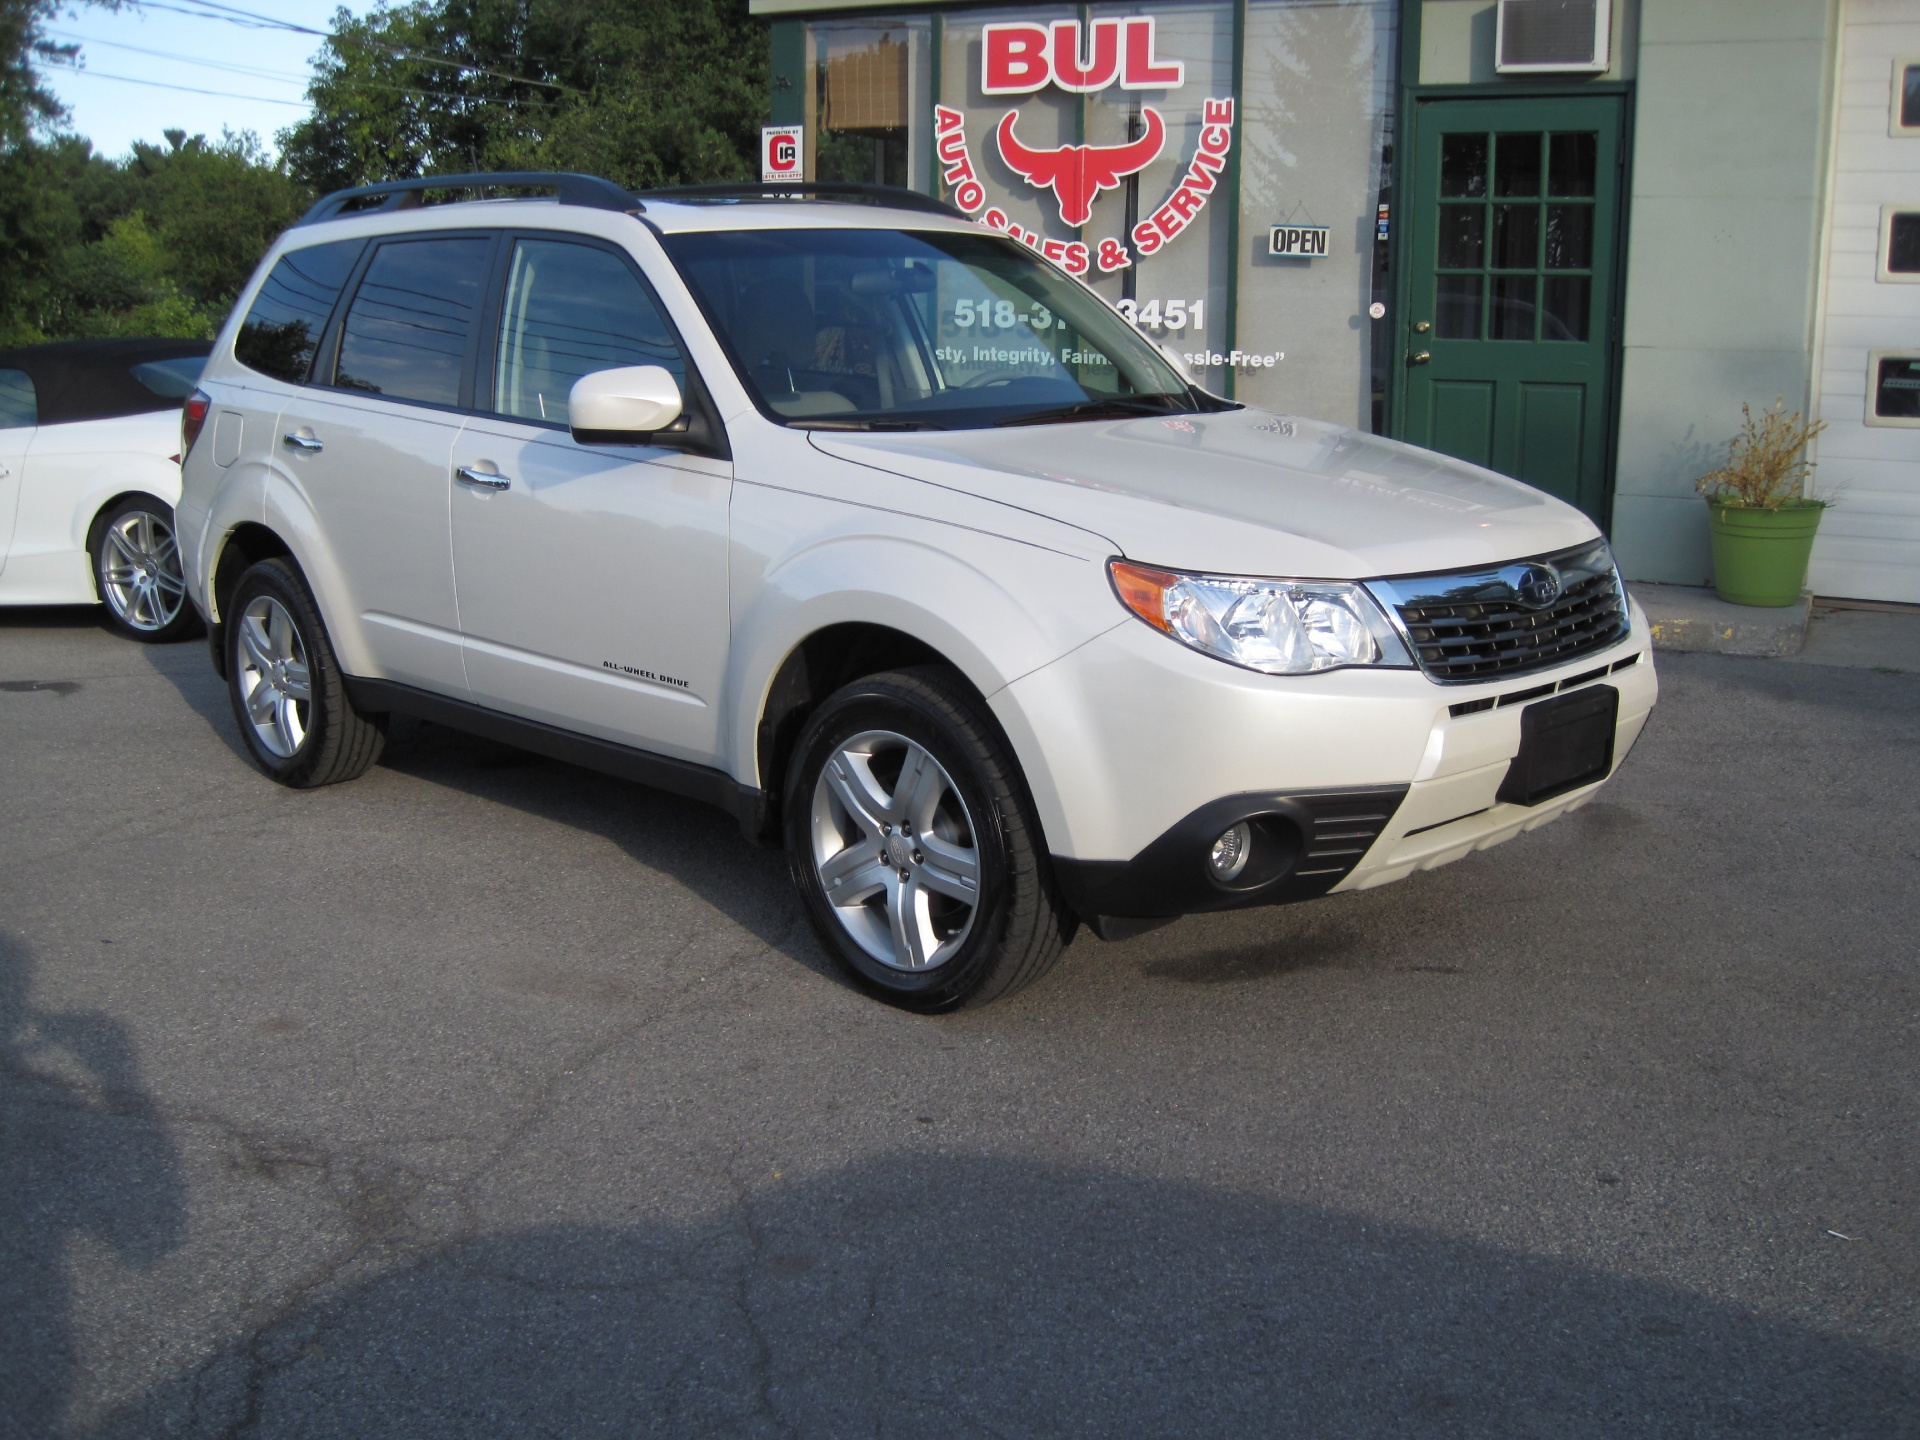 2010 Subaru Forester 25x Limited Super Cleanwhiteleathersunroof Heated Seat Switch Wiring Used